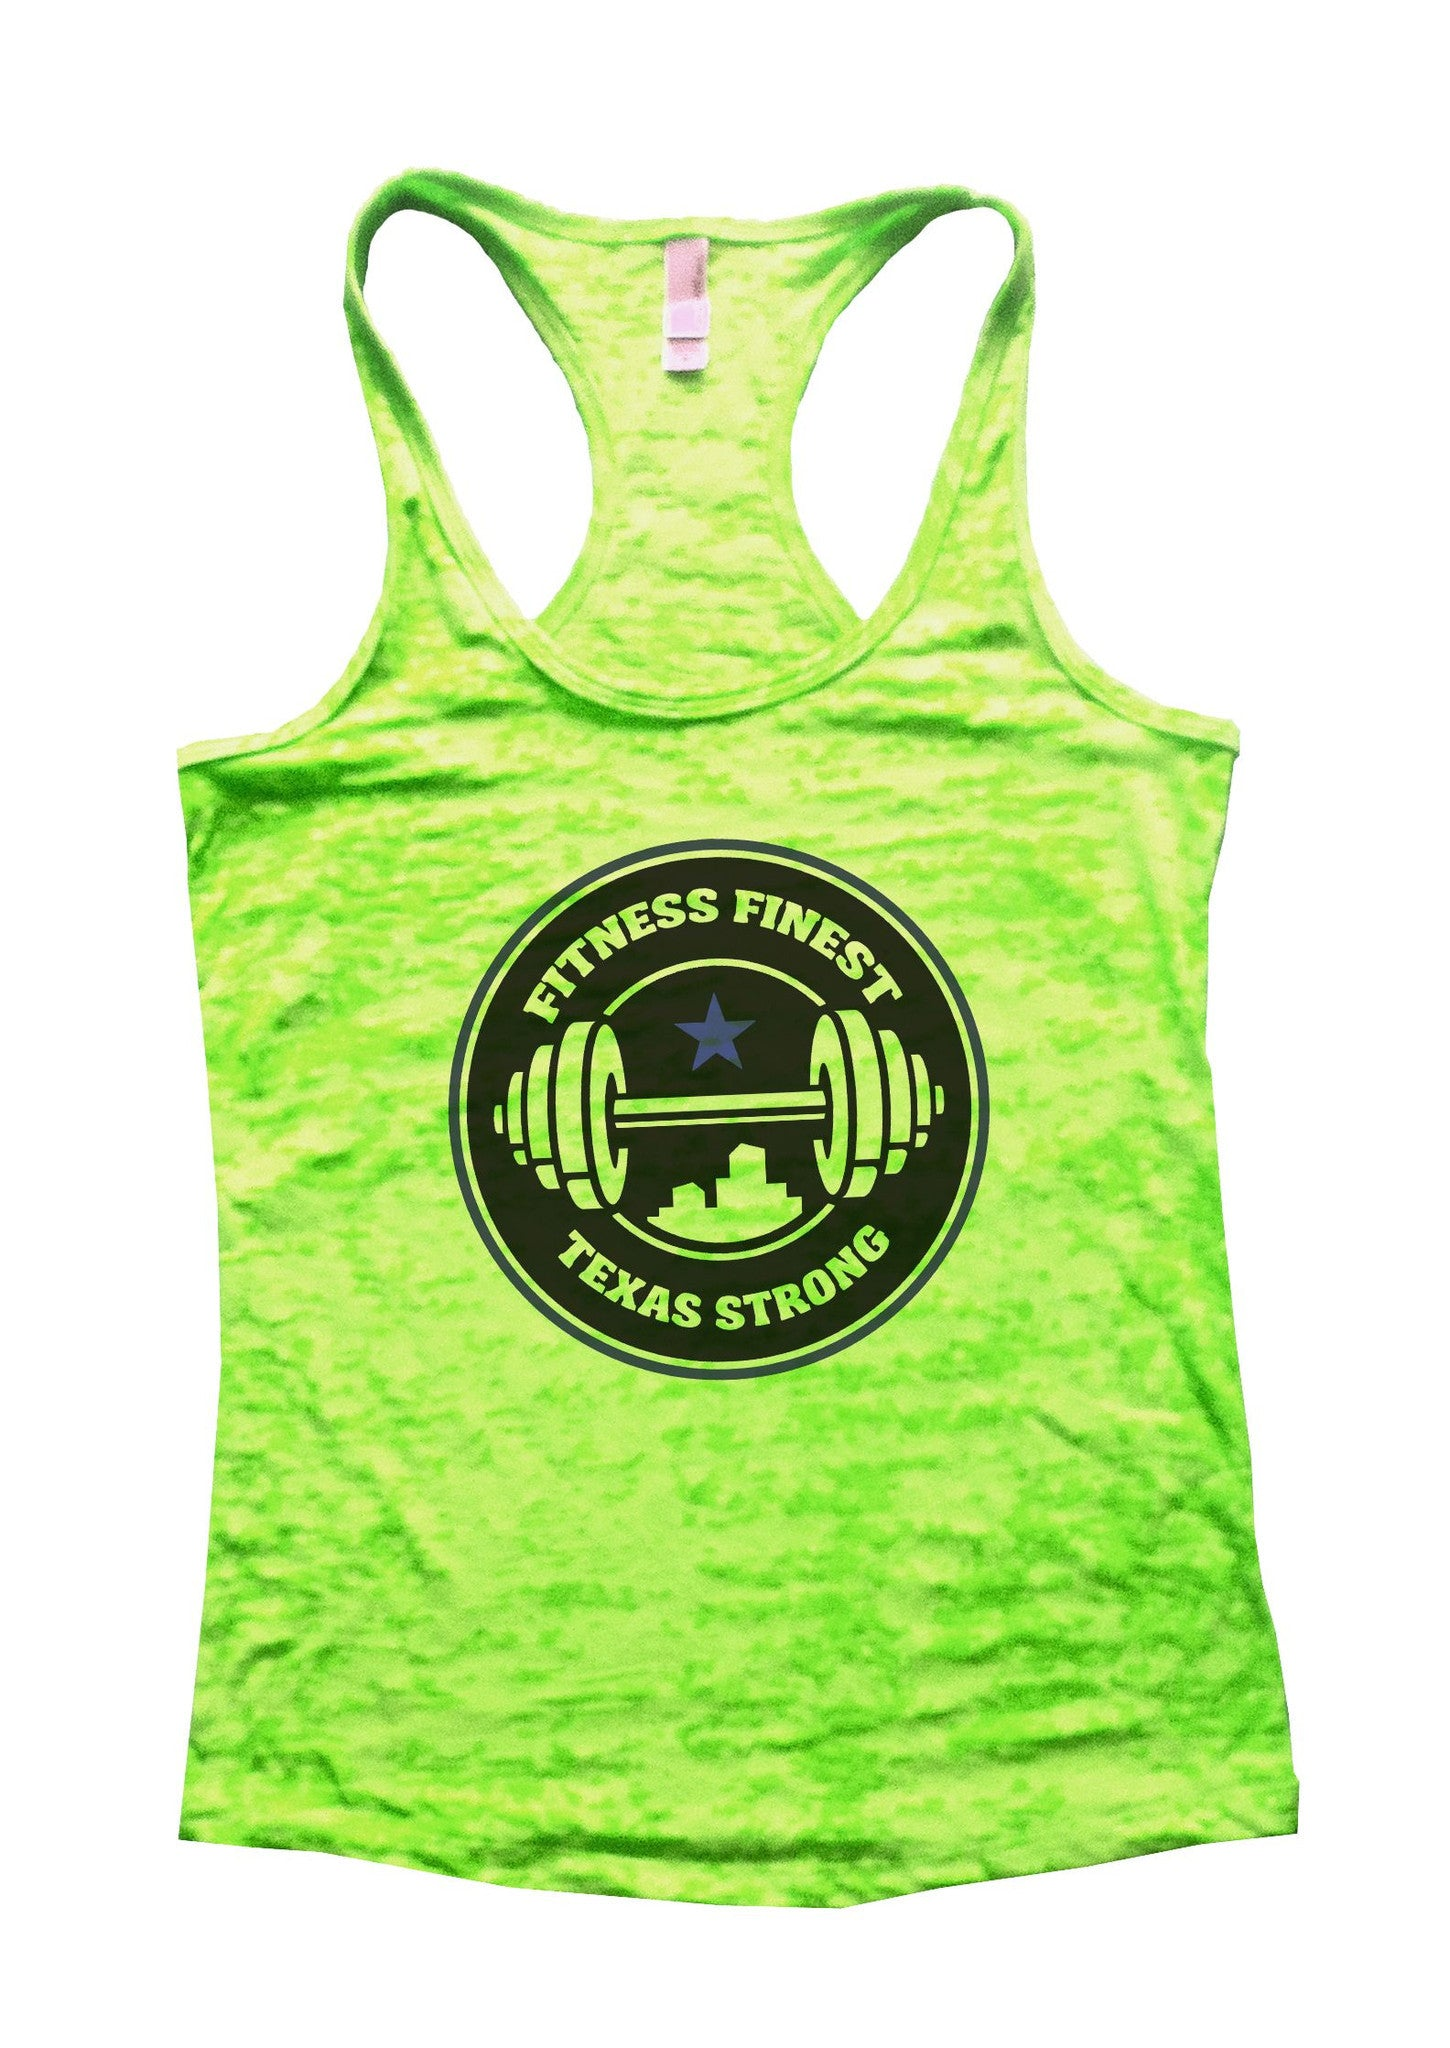 Fitness Finest Texas Strong Burnout Tank Top By BurnoutTankTops.com - 778 - Funny Shirts Tank Tops Burnouts and Triblends  - 2